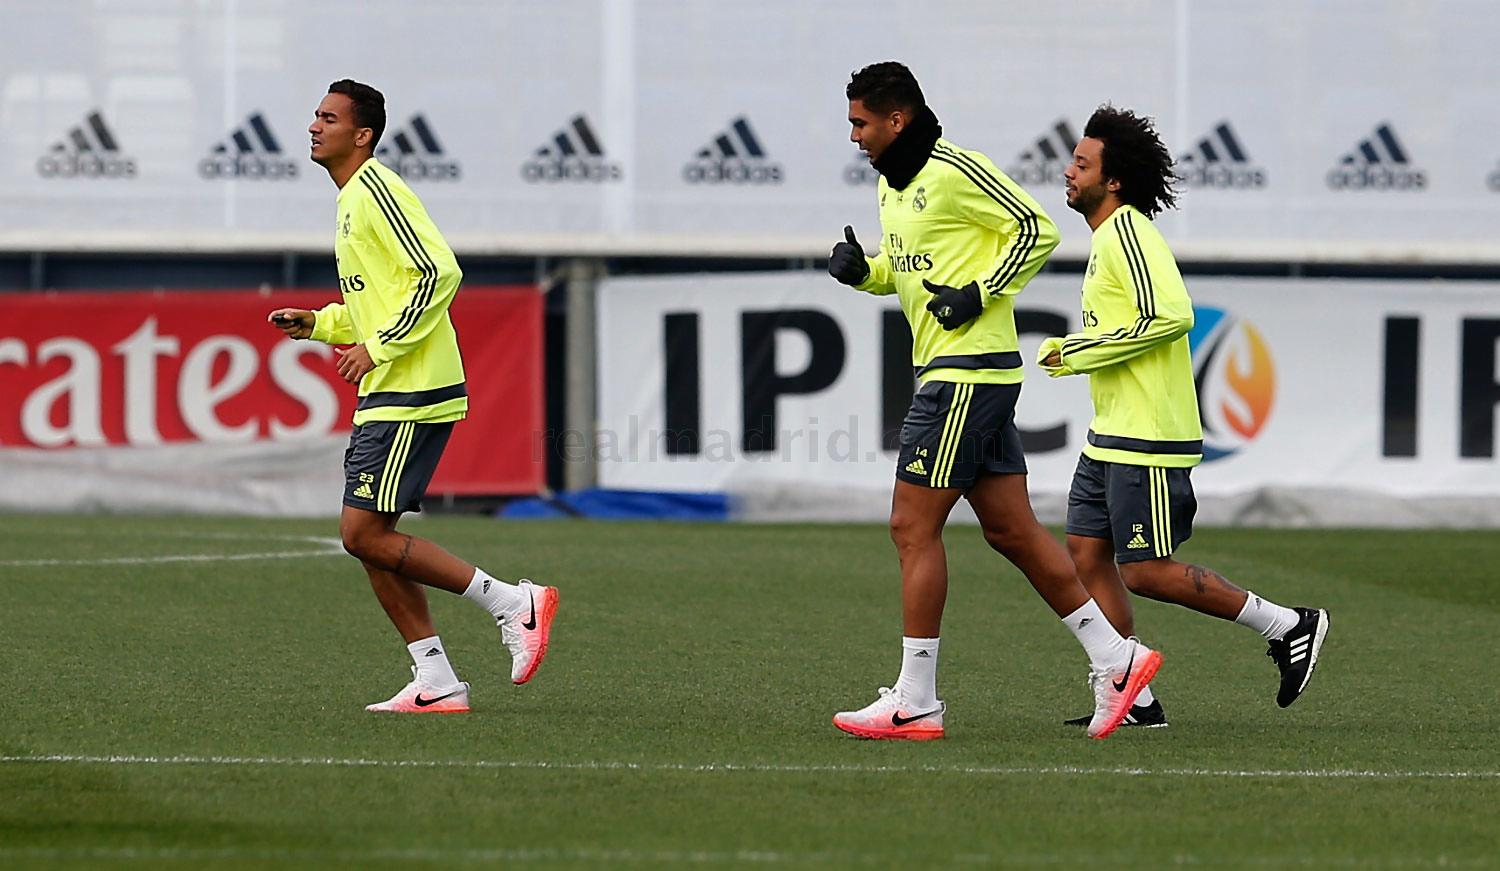 Real Madrid - Entrenamiento del Real Madrid - 14-12-2015